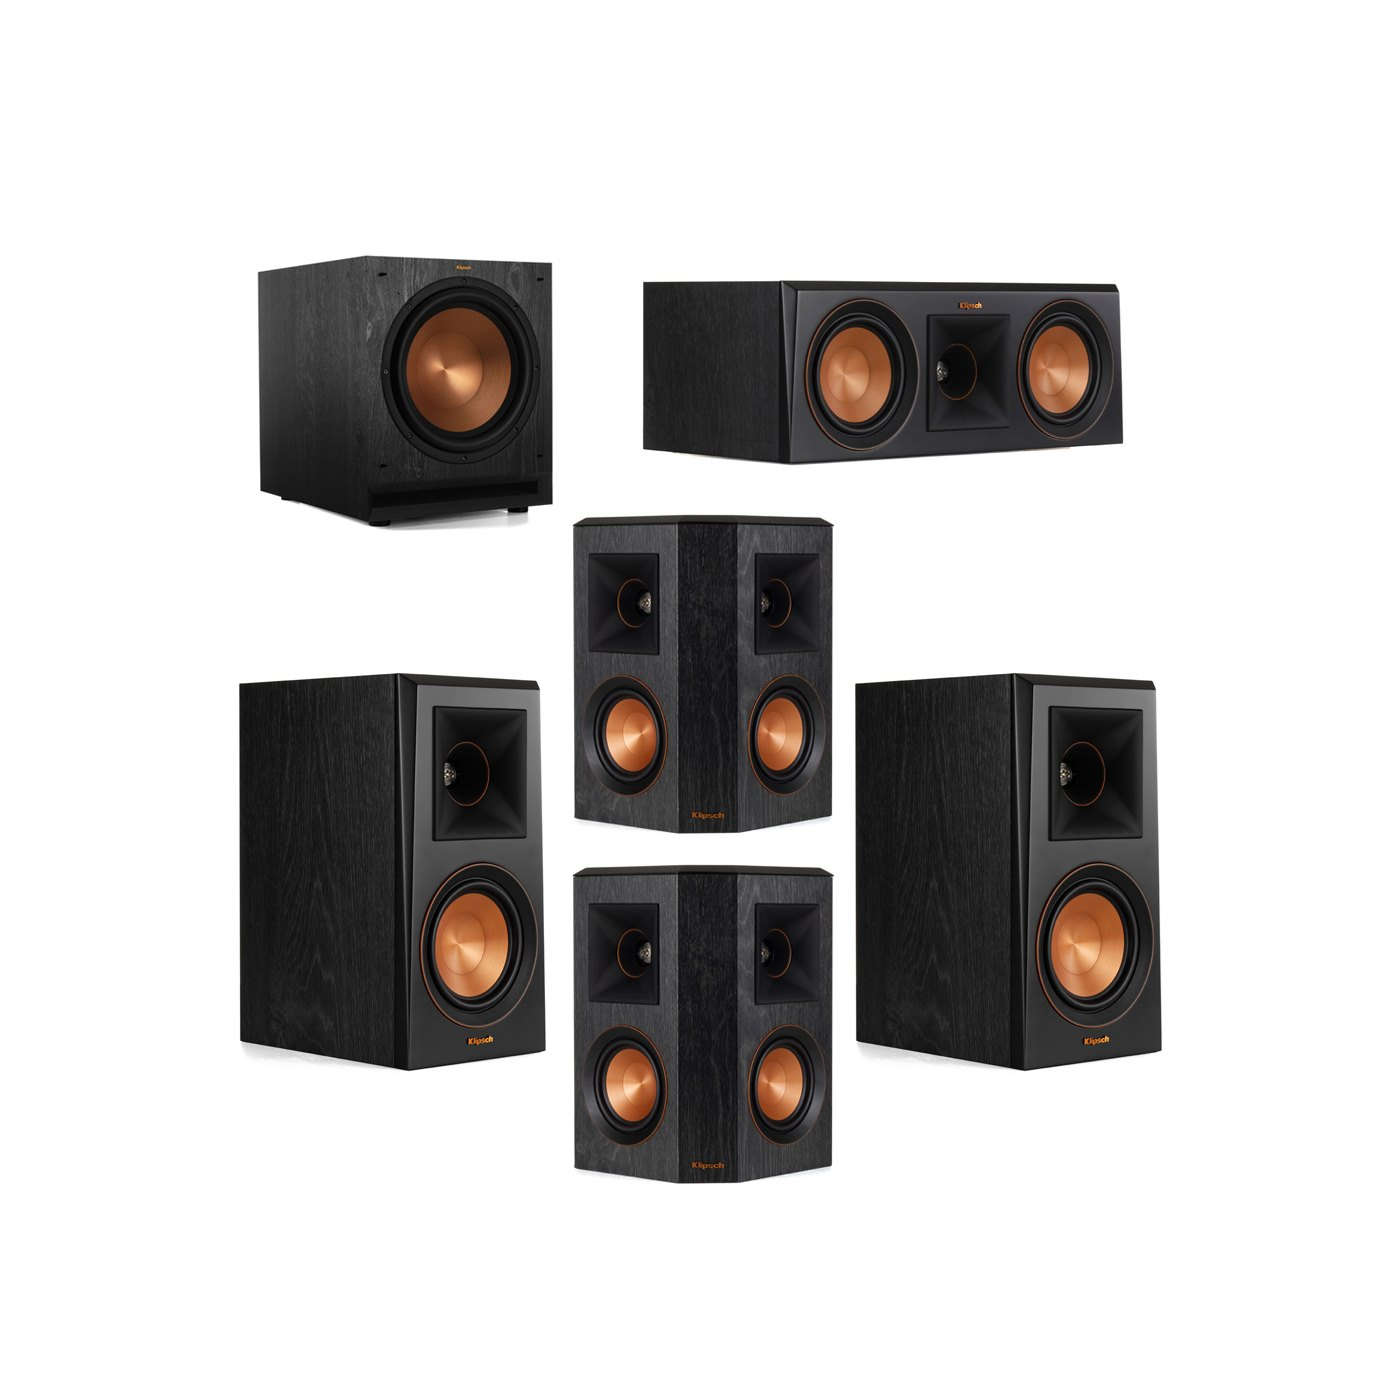 Klipsch 5.1 System with 2 RP-500M Bookshelf Speakers, 1 Klipsch RP-500C Center Speaker, 2 Klipsch RP-402S Surround Speakers, 1 Klipsch SPL-120 Subwoofer